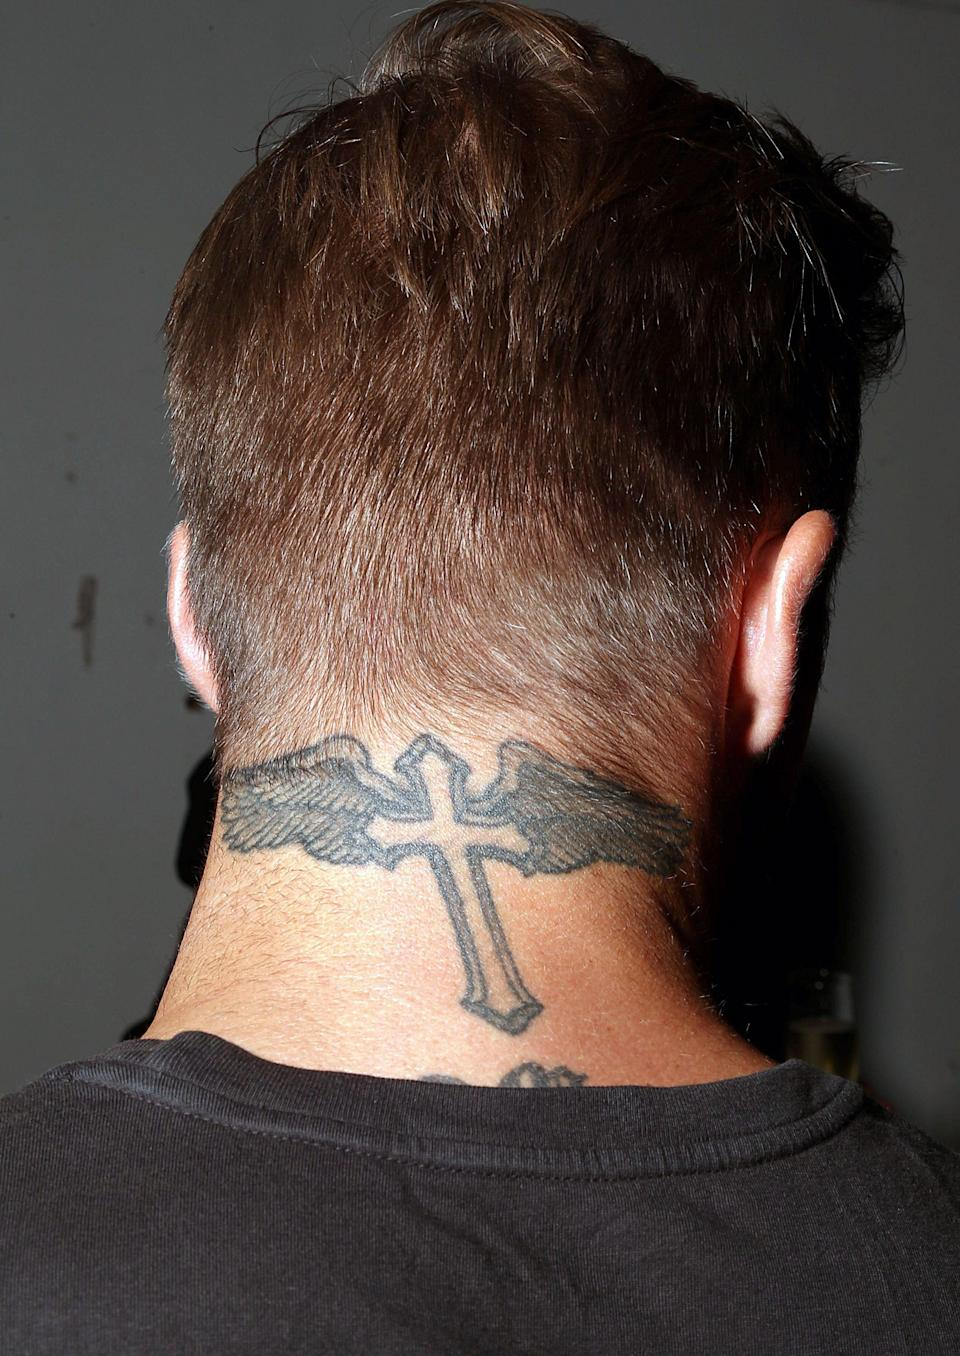 <p>A tattoo on the back of David's neck features a gothic-style cross and angel wings. The tattoo sits just about his 'Romeo' tattoo (not seen here) as a protective symbol watching over it. <br>[Photo: Rex] </p>